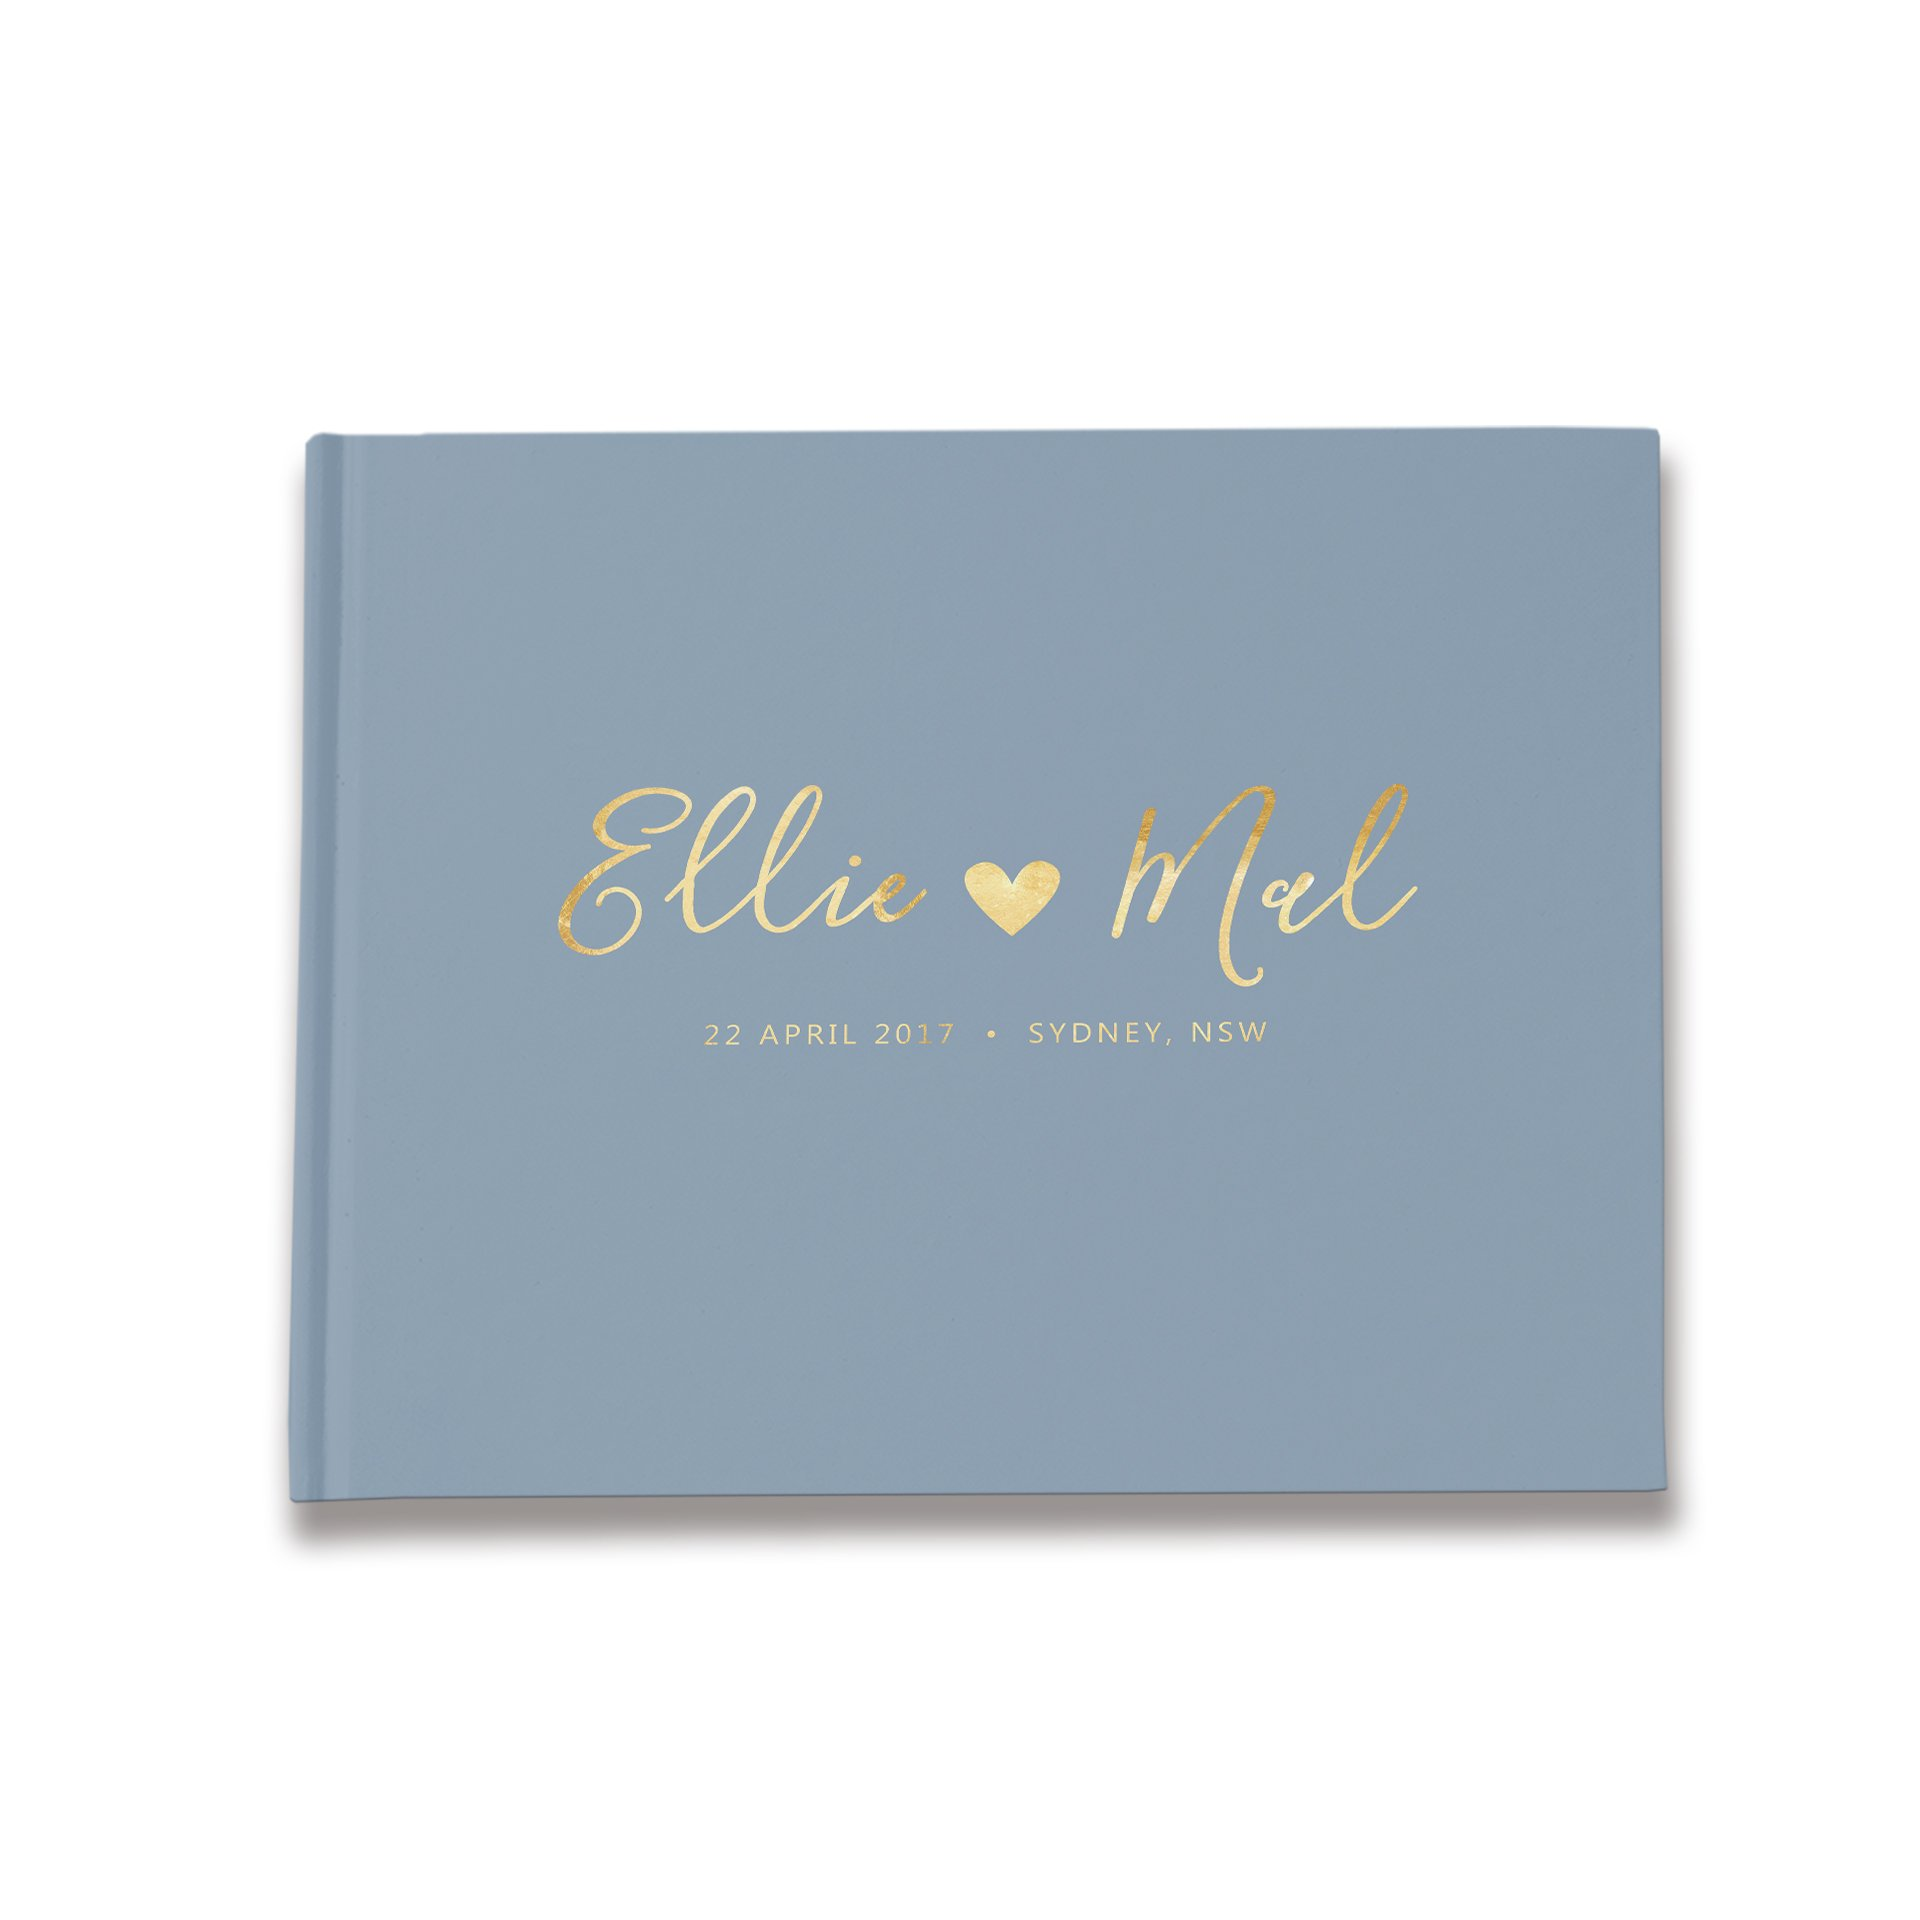 Personalized Wedding Guest Book, Dusty Blue Wedding Guestbook, Custom Guestbook (9 x 6 inches)